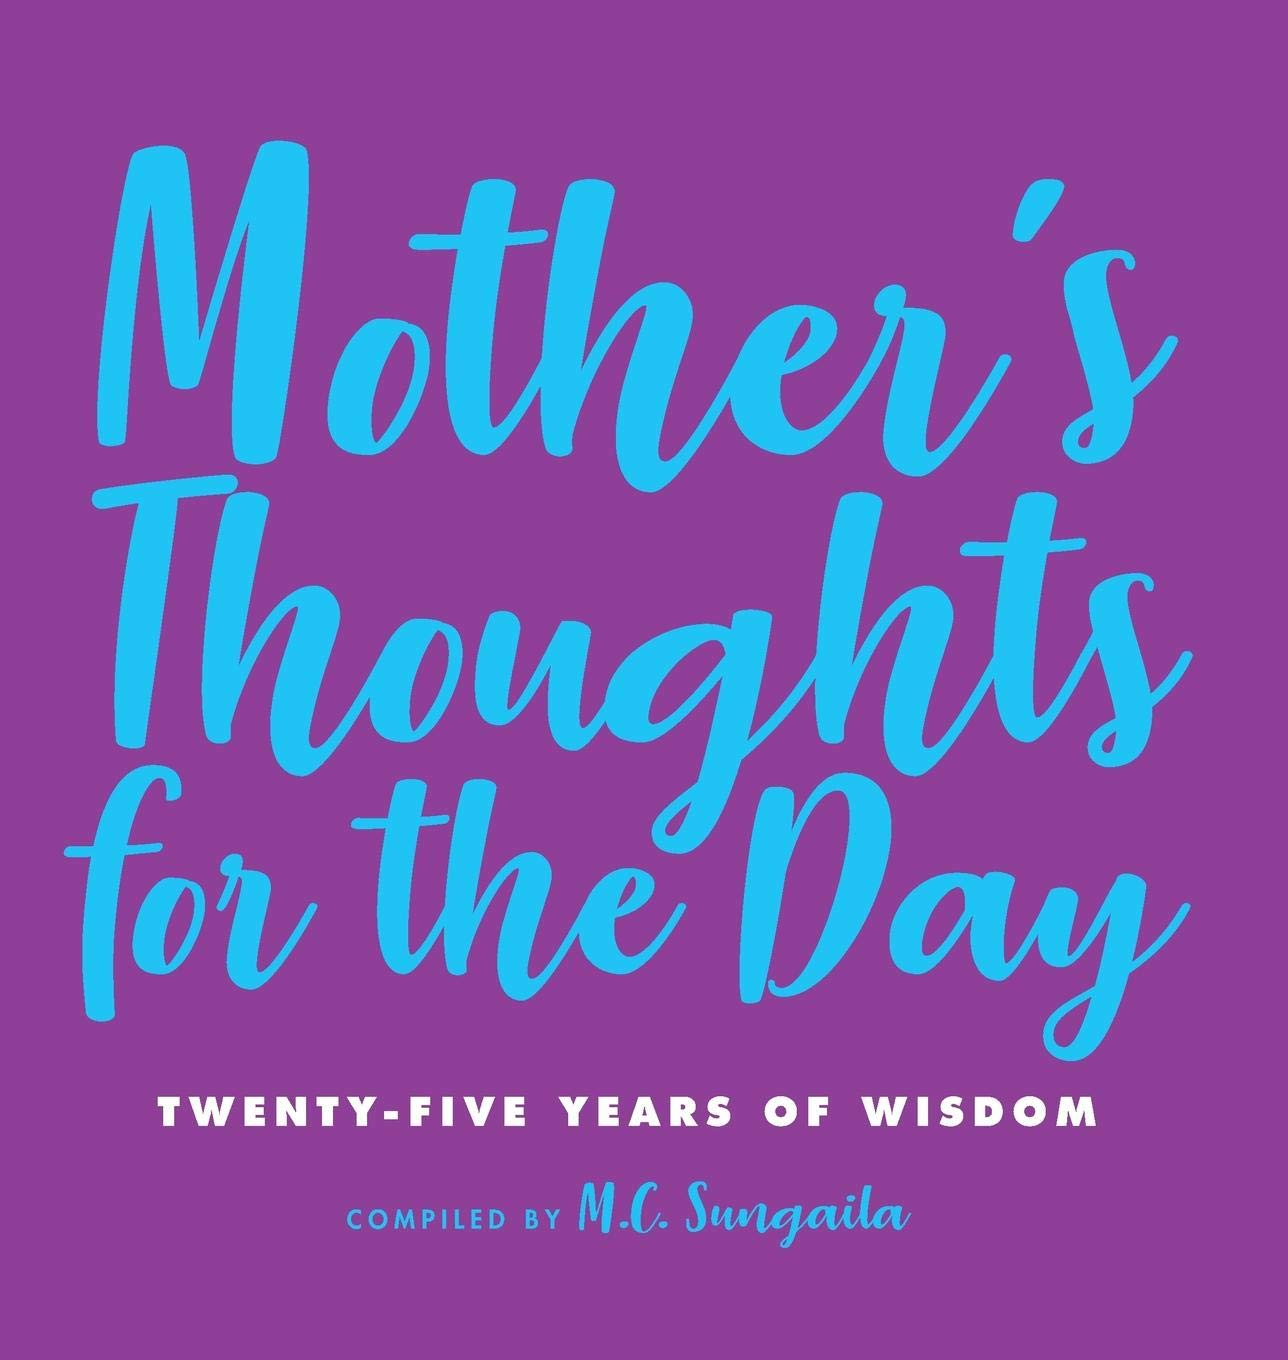 Mother S Thoughts For The Day Twenty Five Years Of Wisdom 1 Sungaila M C 9781733865708 Amazon Com Books